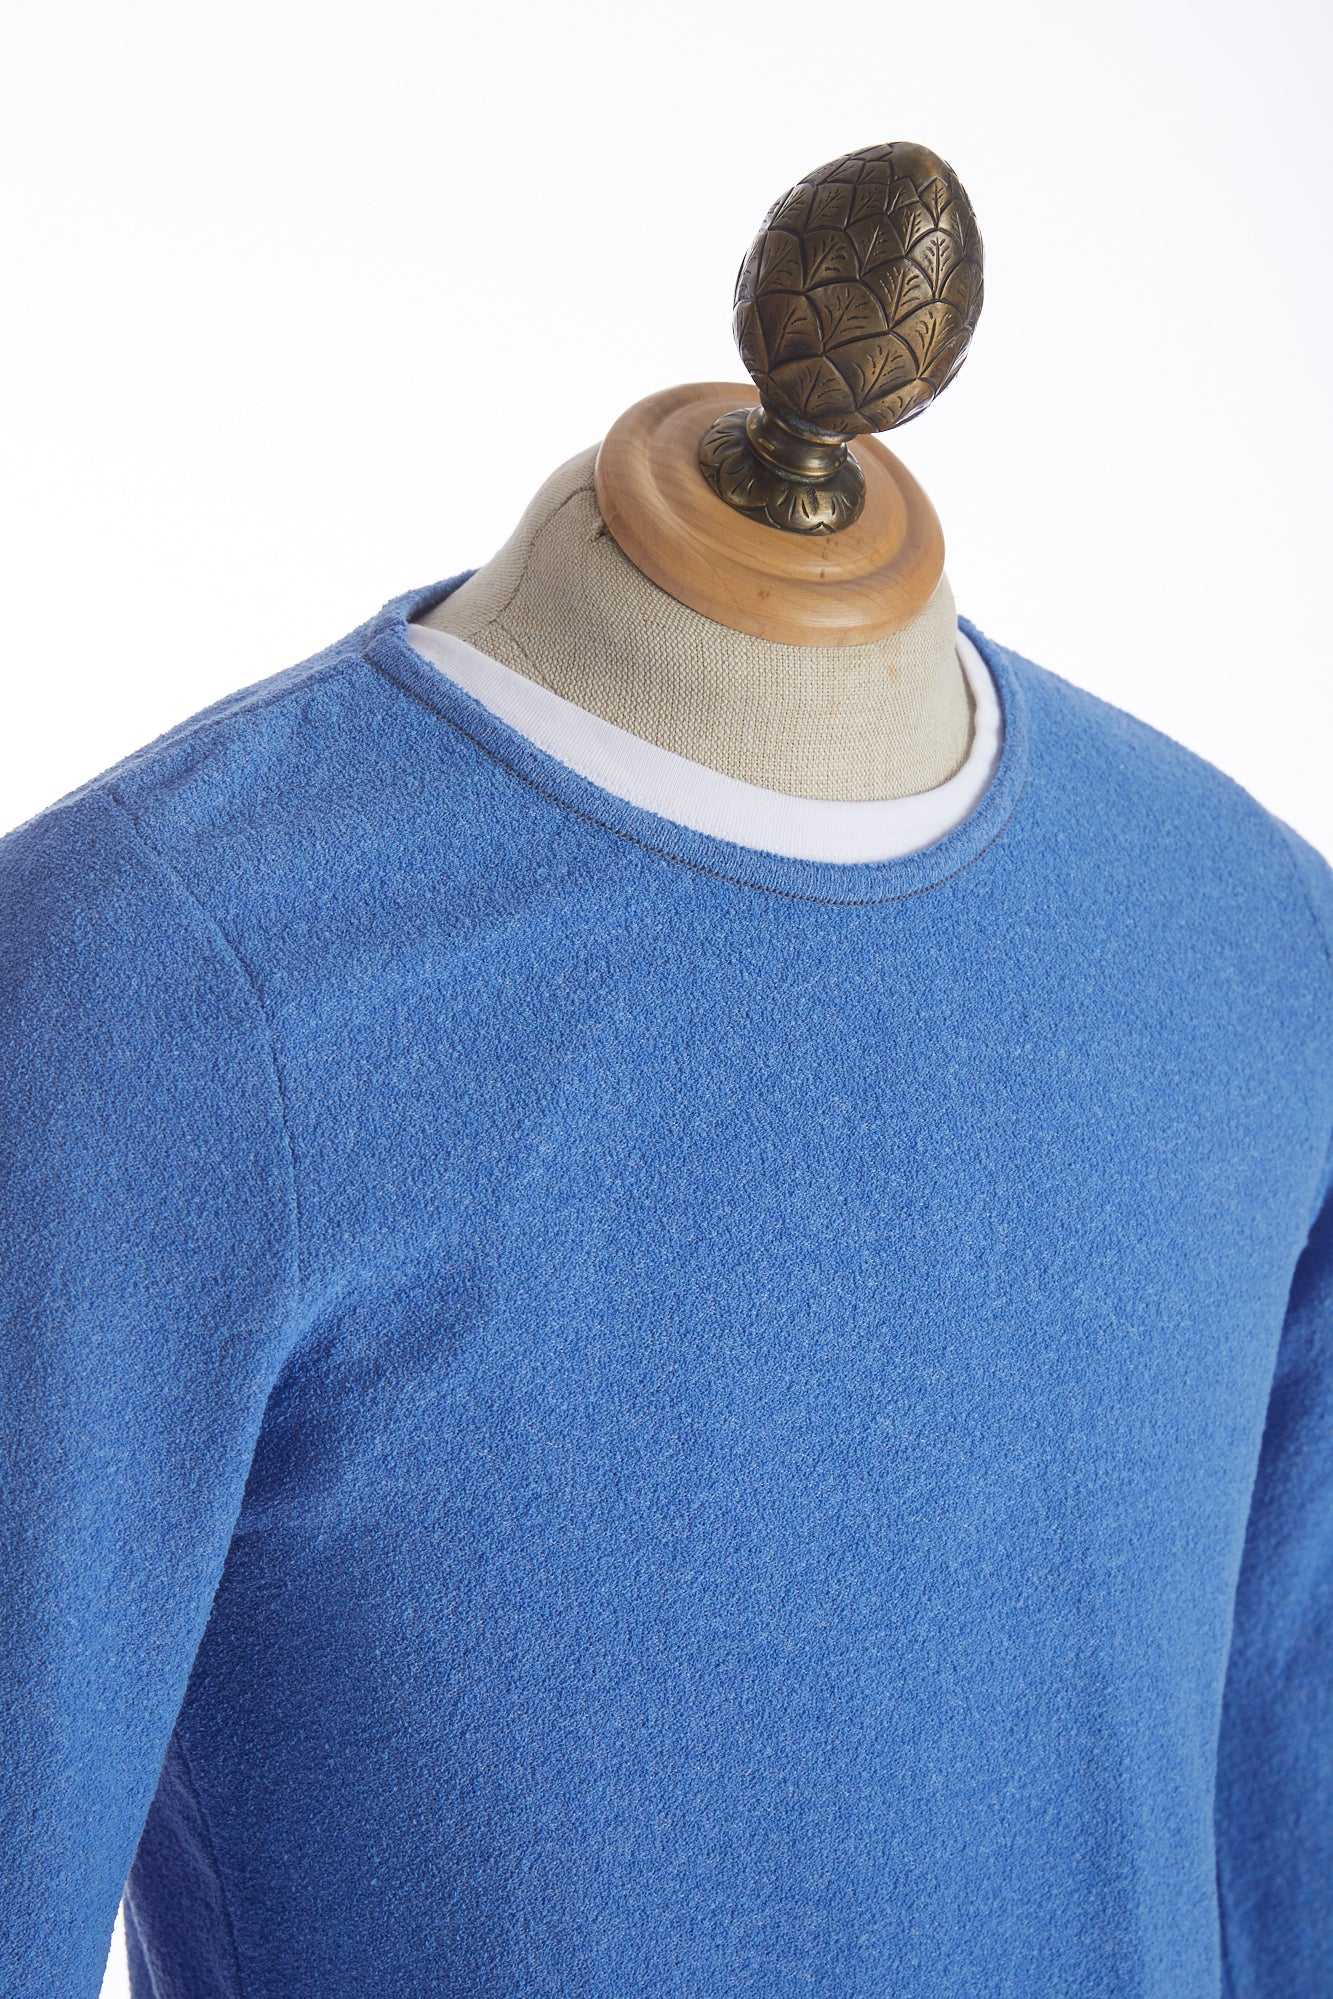 Phil Petter Baby Blue Crewneck Sweater